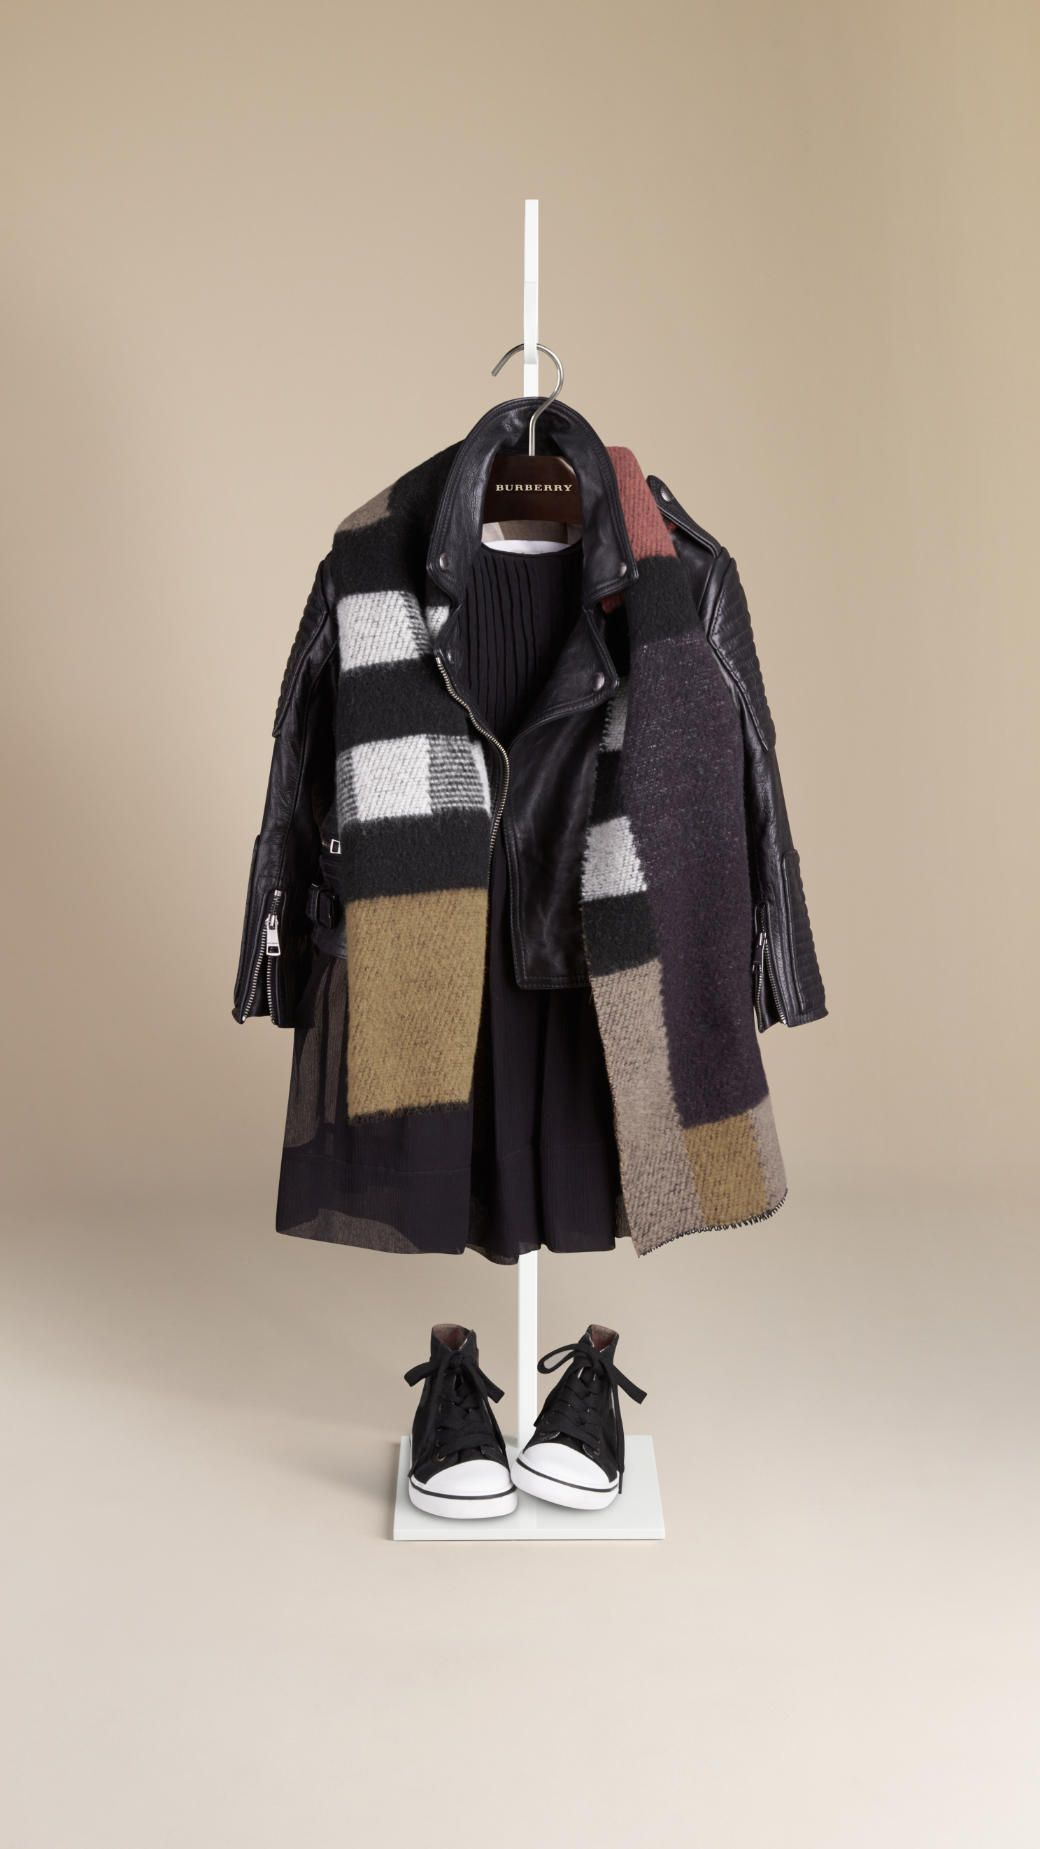 Perfecto en cuir   Burberry   For my girl   Pinterest   Mode enfant ... bd744a01112